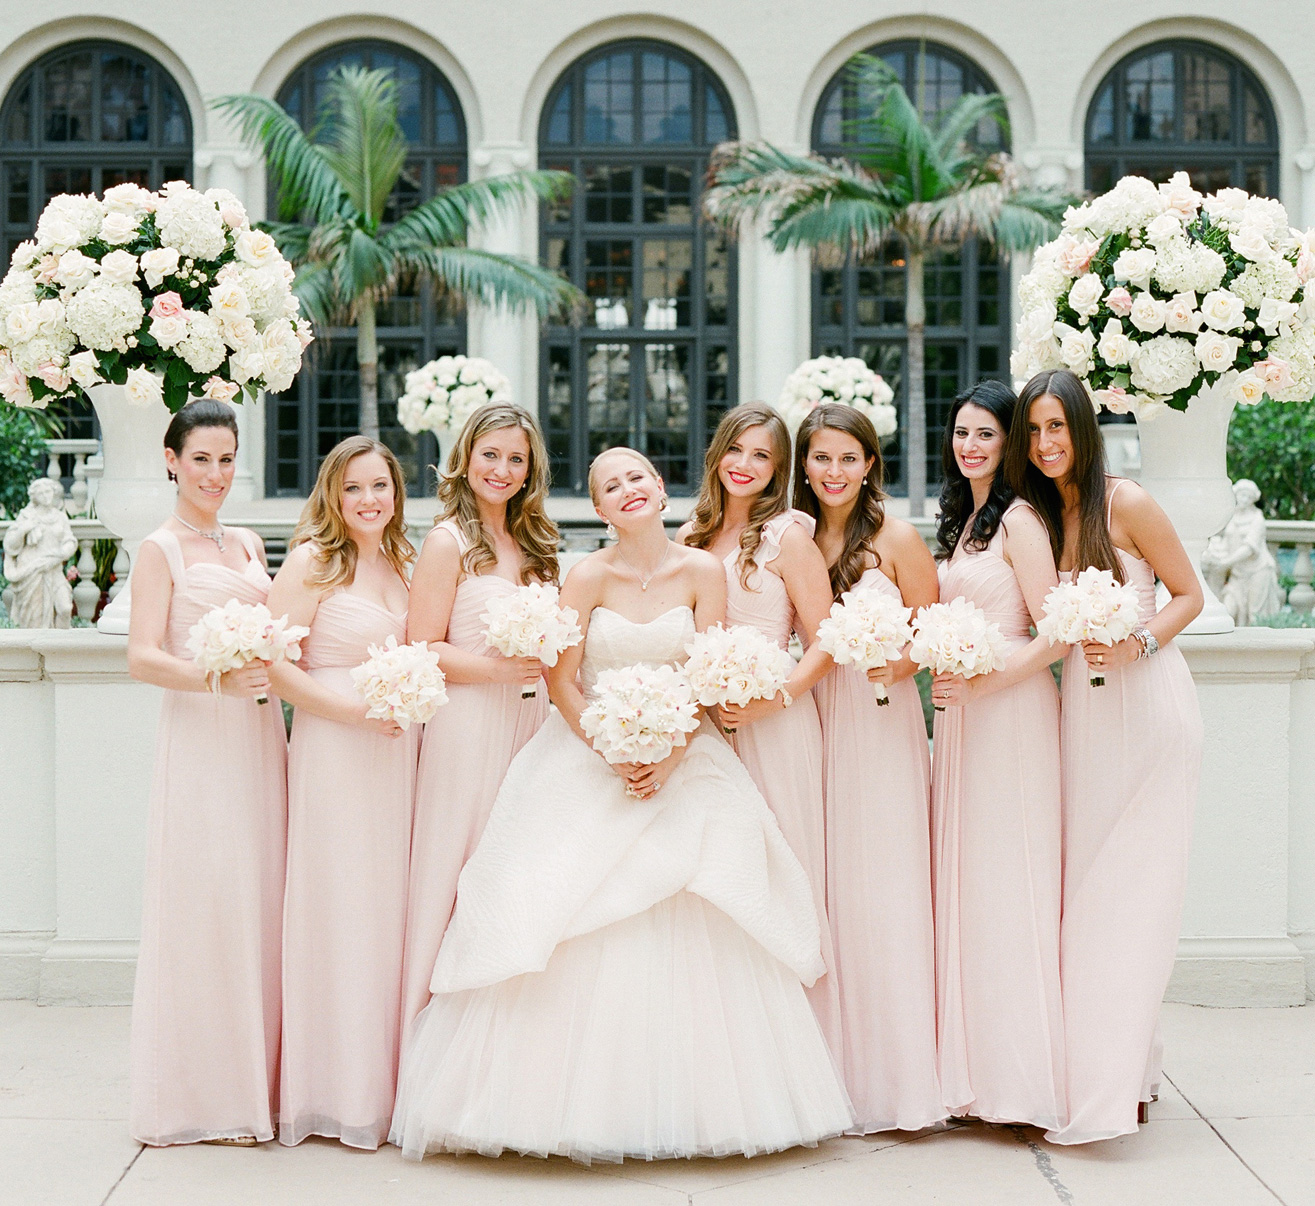 Bridesmaids in pink dresses with orchid bouquets